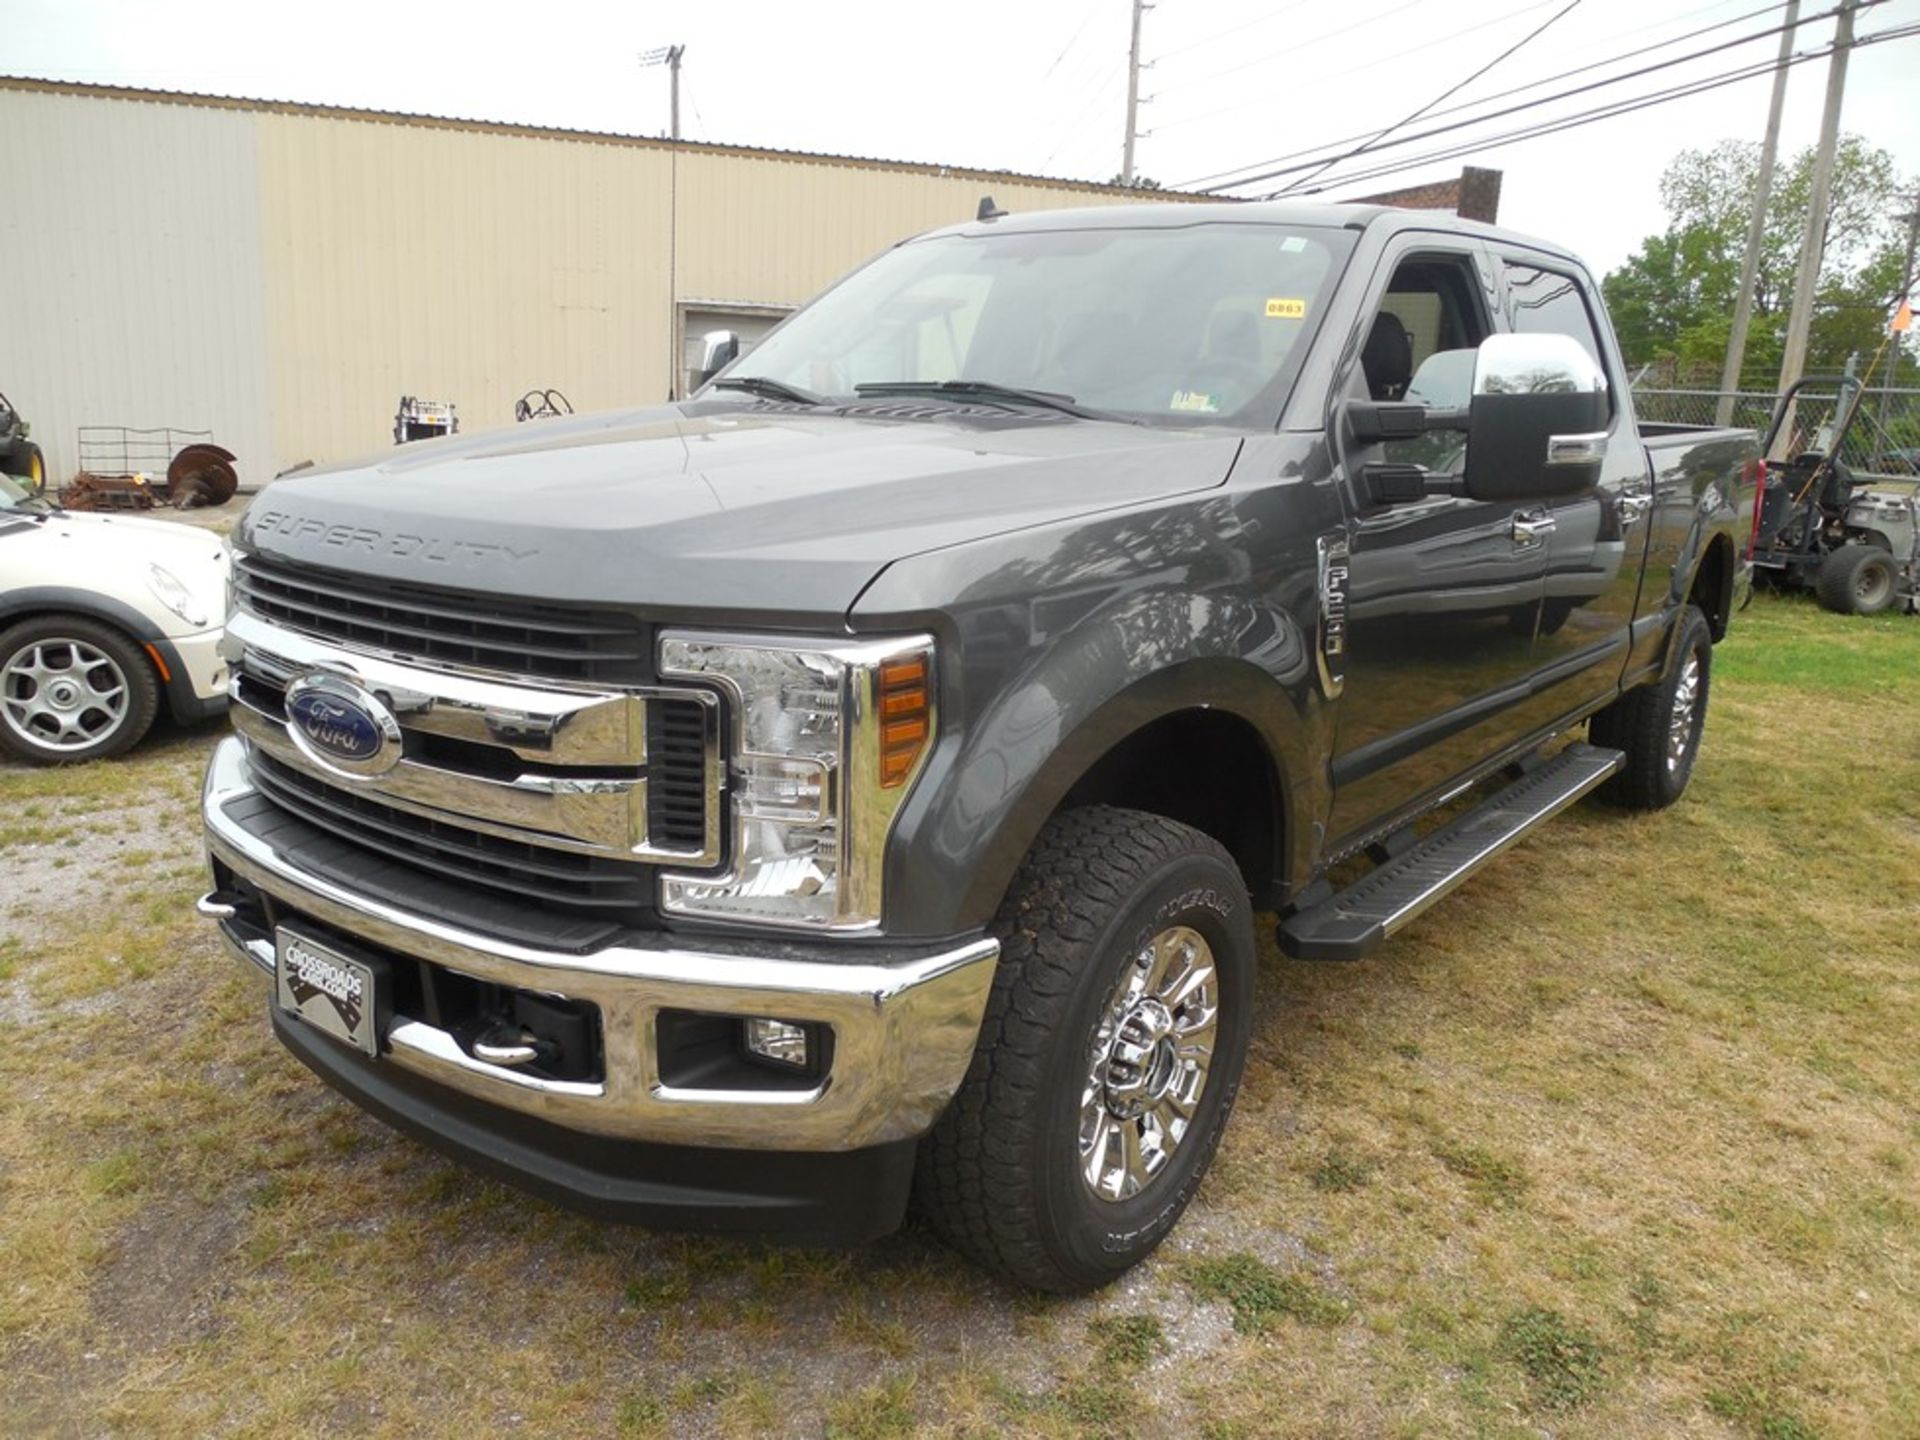 2019 Ford F250 XLT 4wd, 4dr, gas, vin# 1FT7W2B61KEC95867 19,999 miles - Image 2 of 7